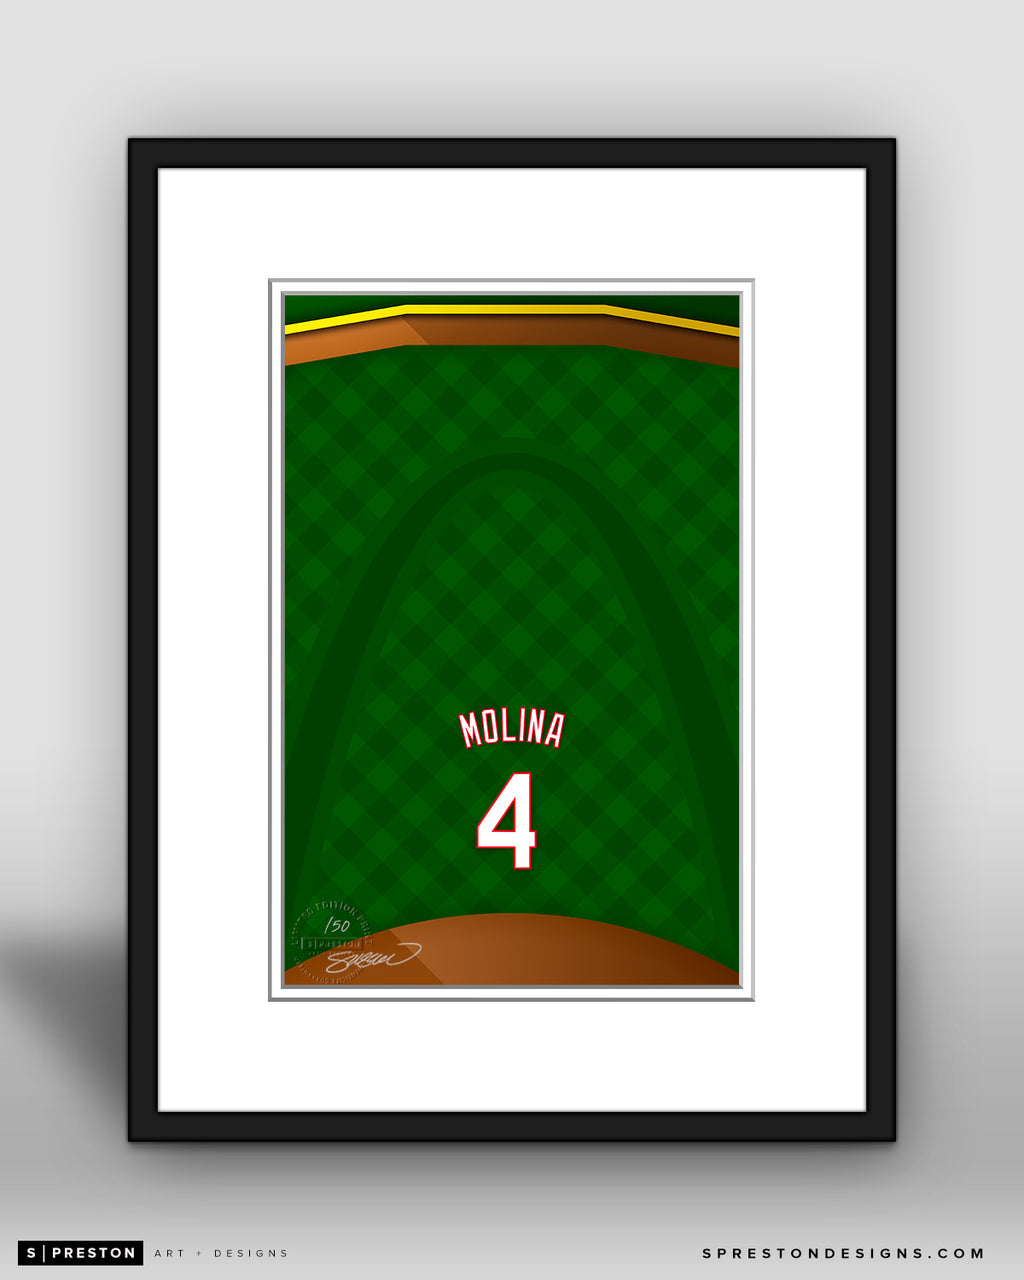 Minimalist Busch Stadium - Player Series - Yadier Molina - St. Louis Cardinals - S. Preston